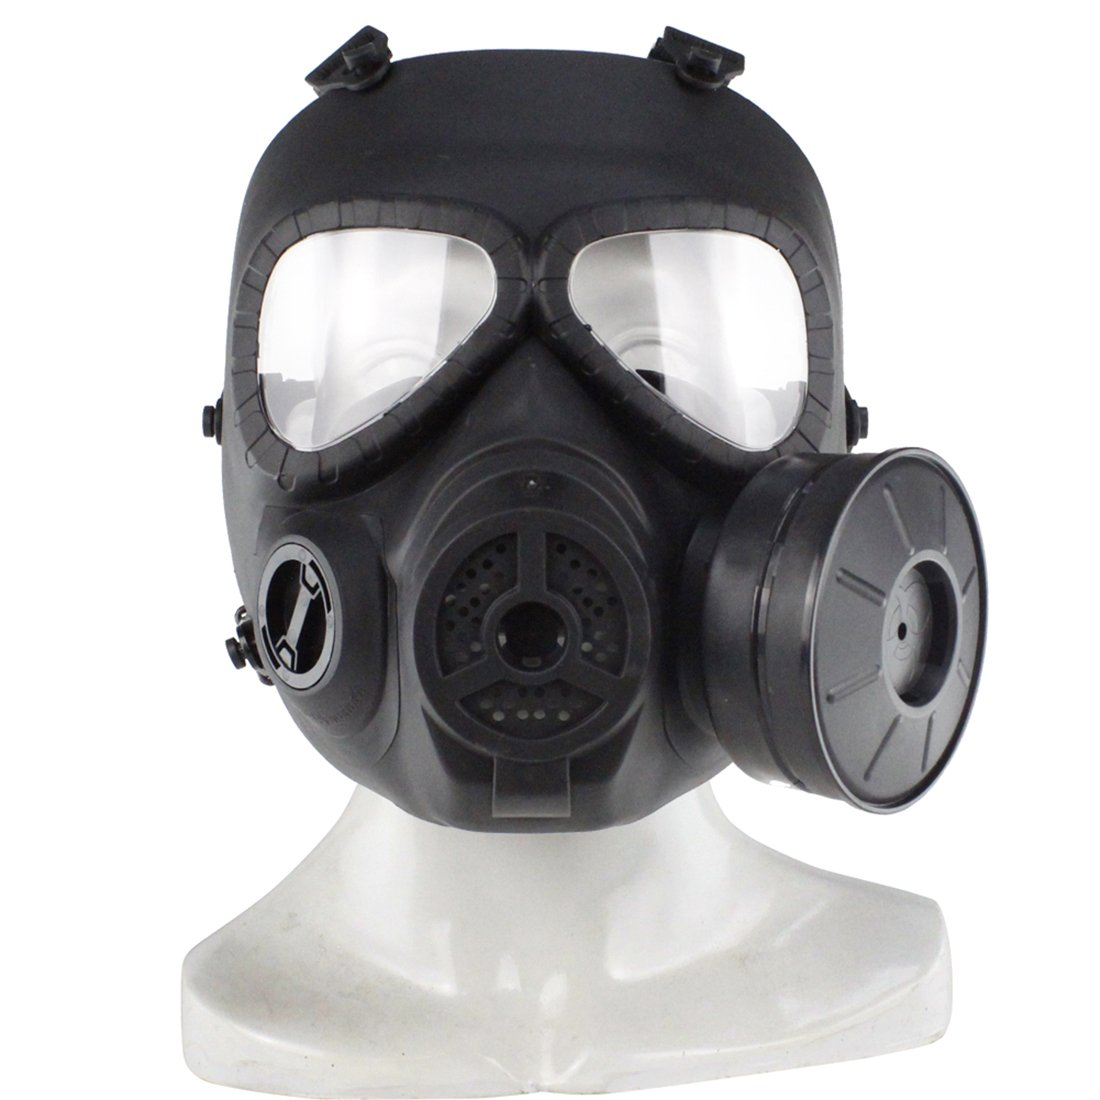 PeleusTech® WST Head Mask Full Face Single Canister Electric Ventilative Biochemical Gas Mask No Actual Anti Virus Function Toys Masks for Children Cosplay Halloween and Party Black